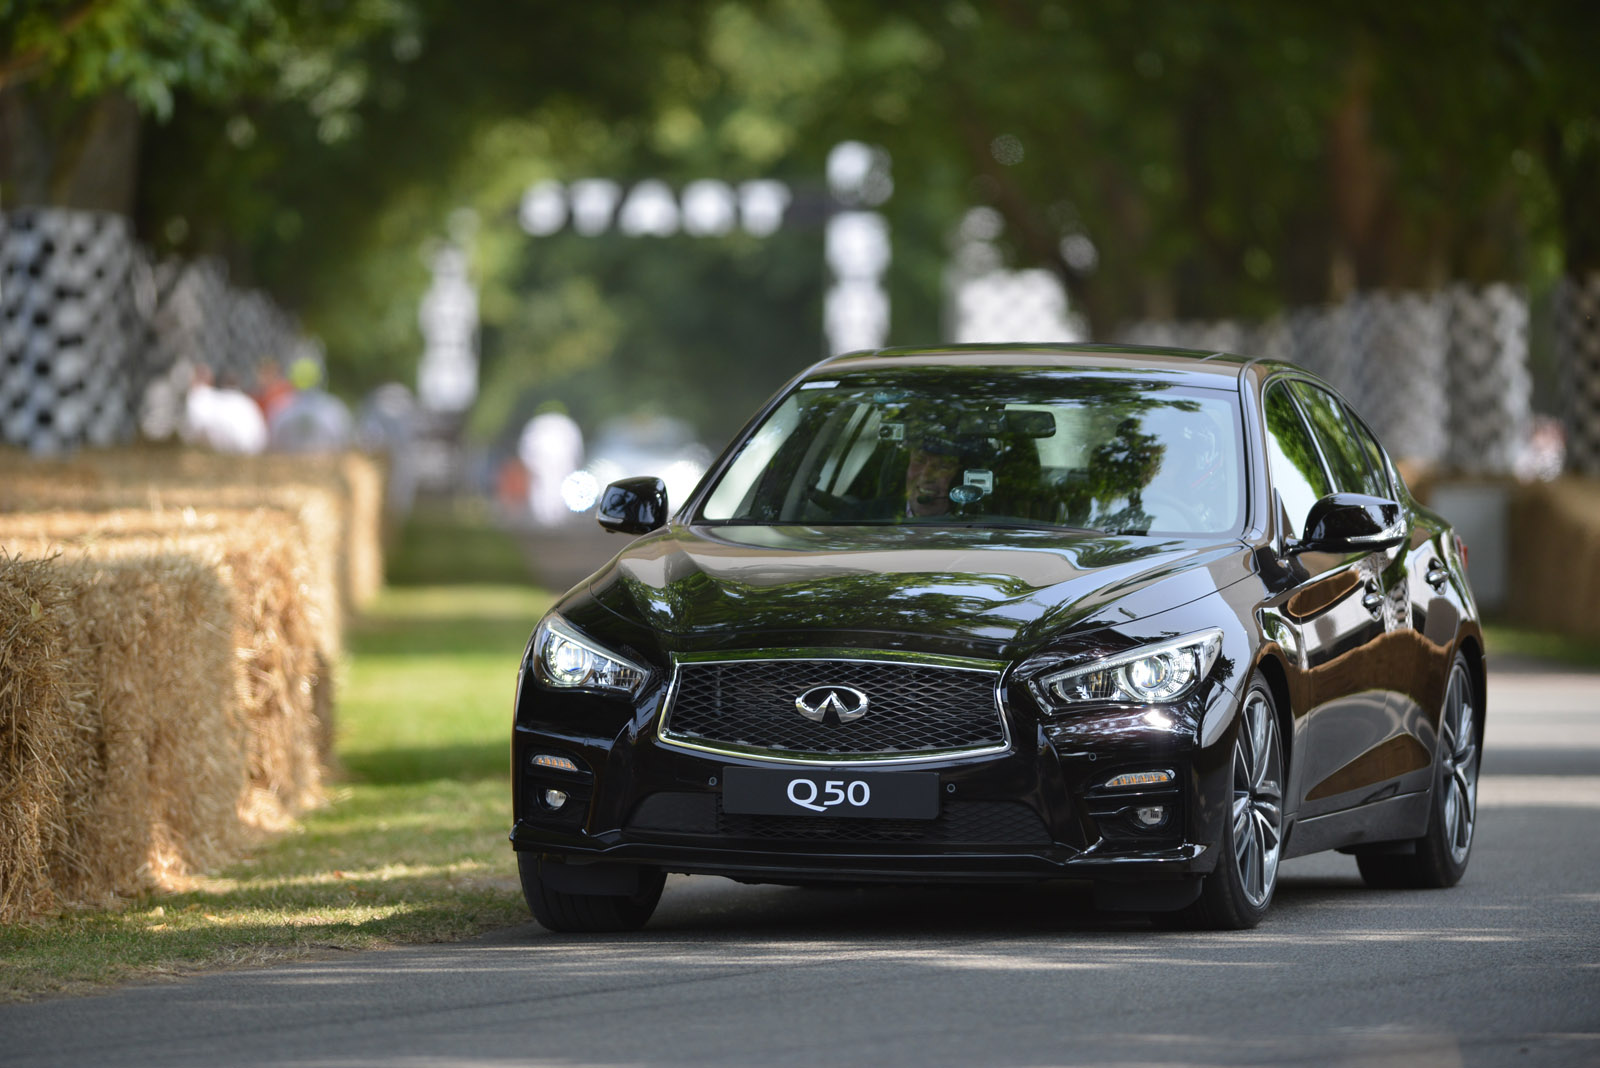 Infiniti Q50 at Goodwood Festival of Speed